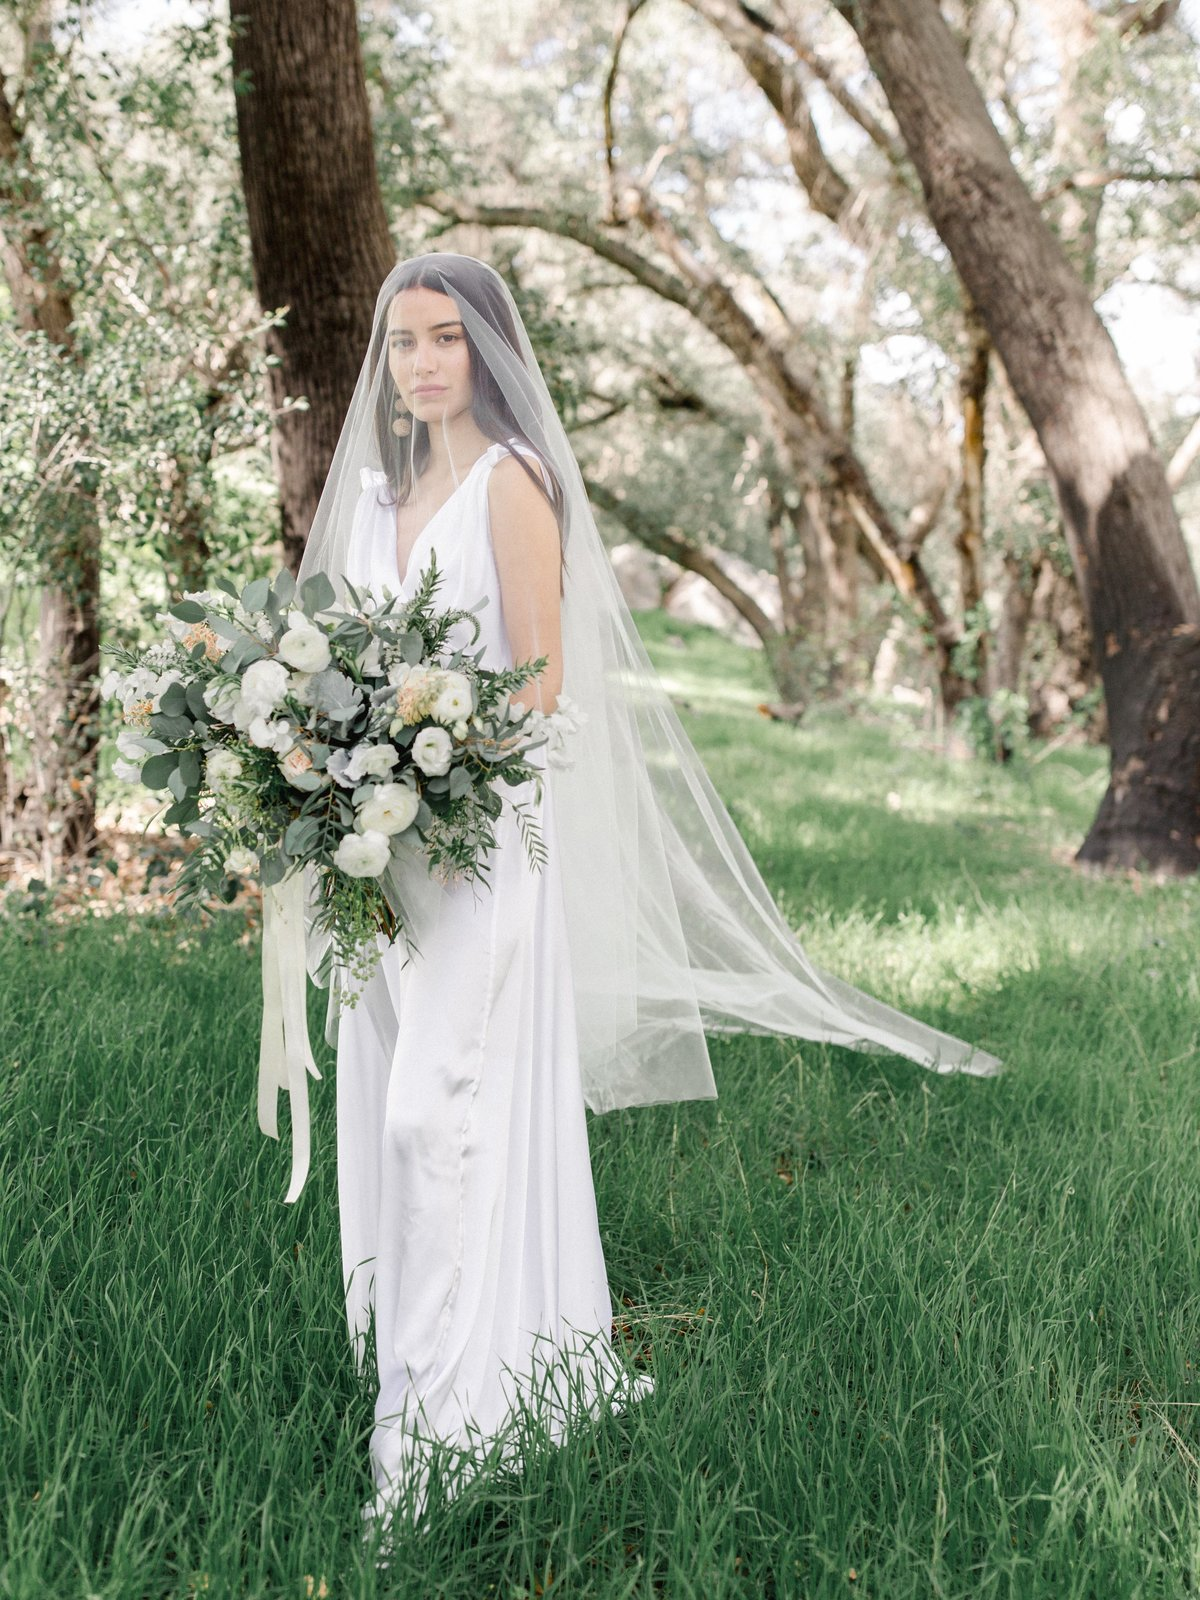 Babsie-Ly-Photography-Fine-Art-Film-Wedding-Bridal-Editorial-in-Hidden-Oaks-San-Diego-129